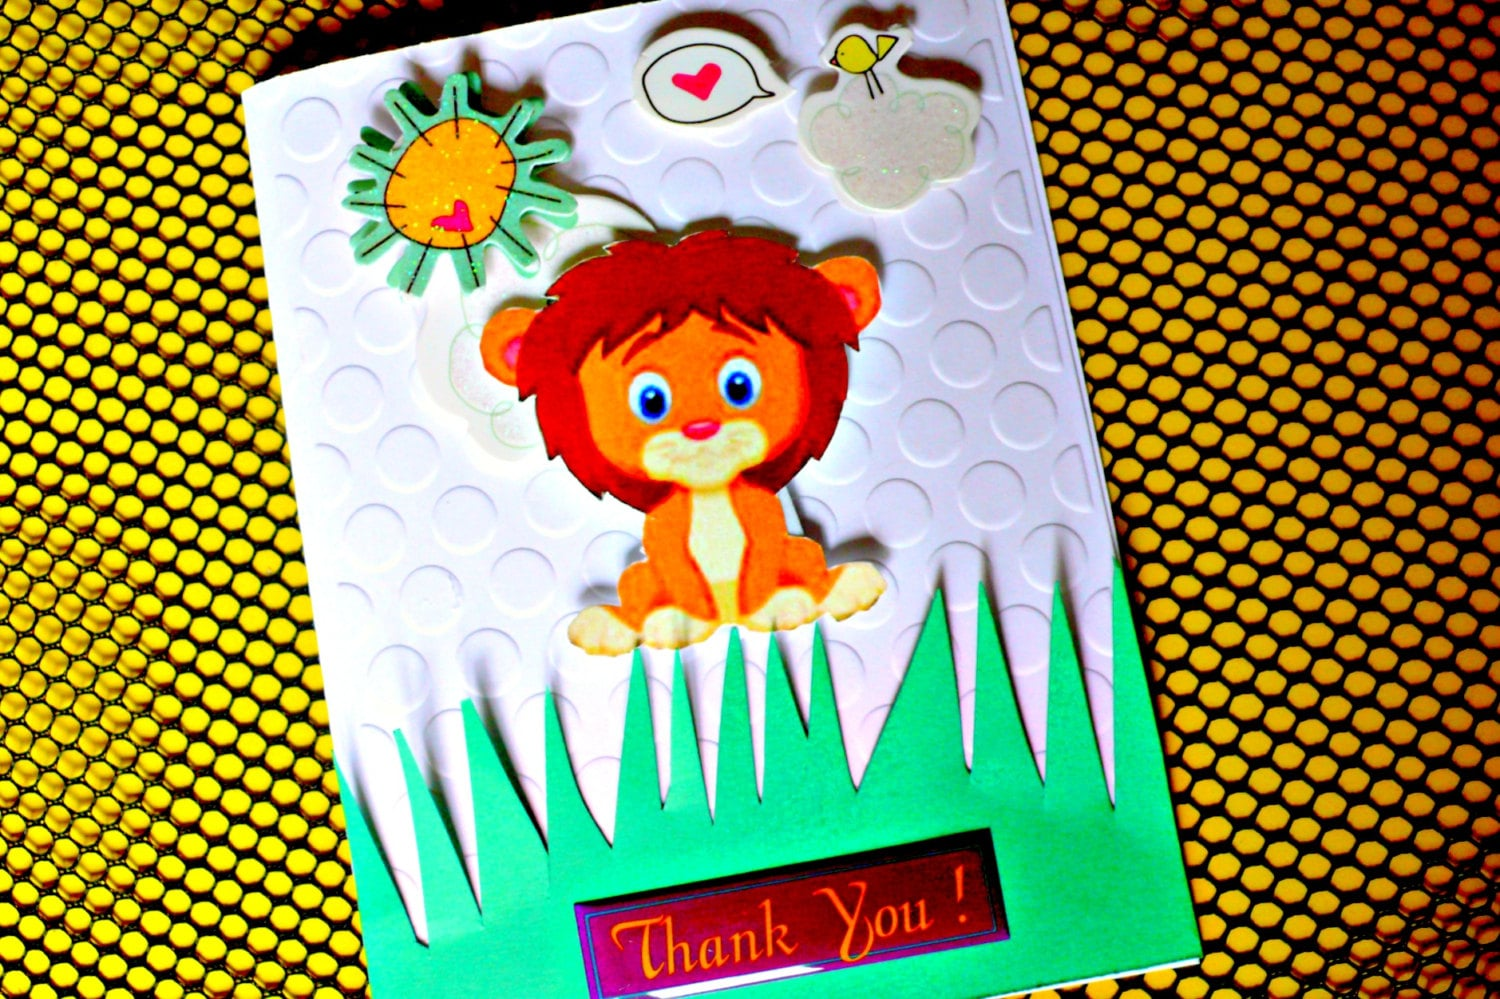 Thank you cards thank you cards kids handmade thank you zoom kristyandbryce Choice Image